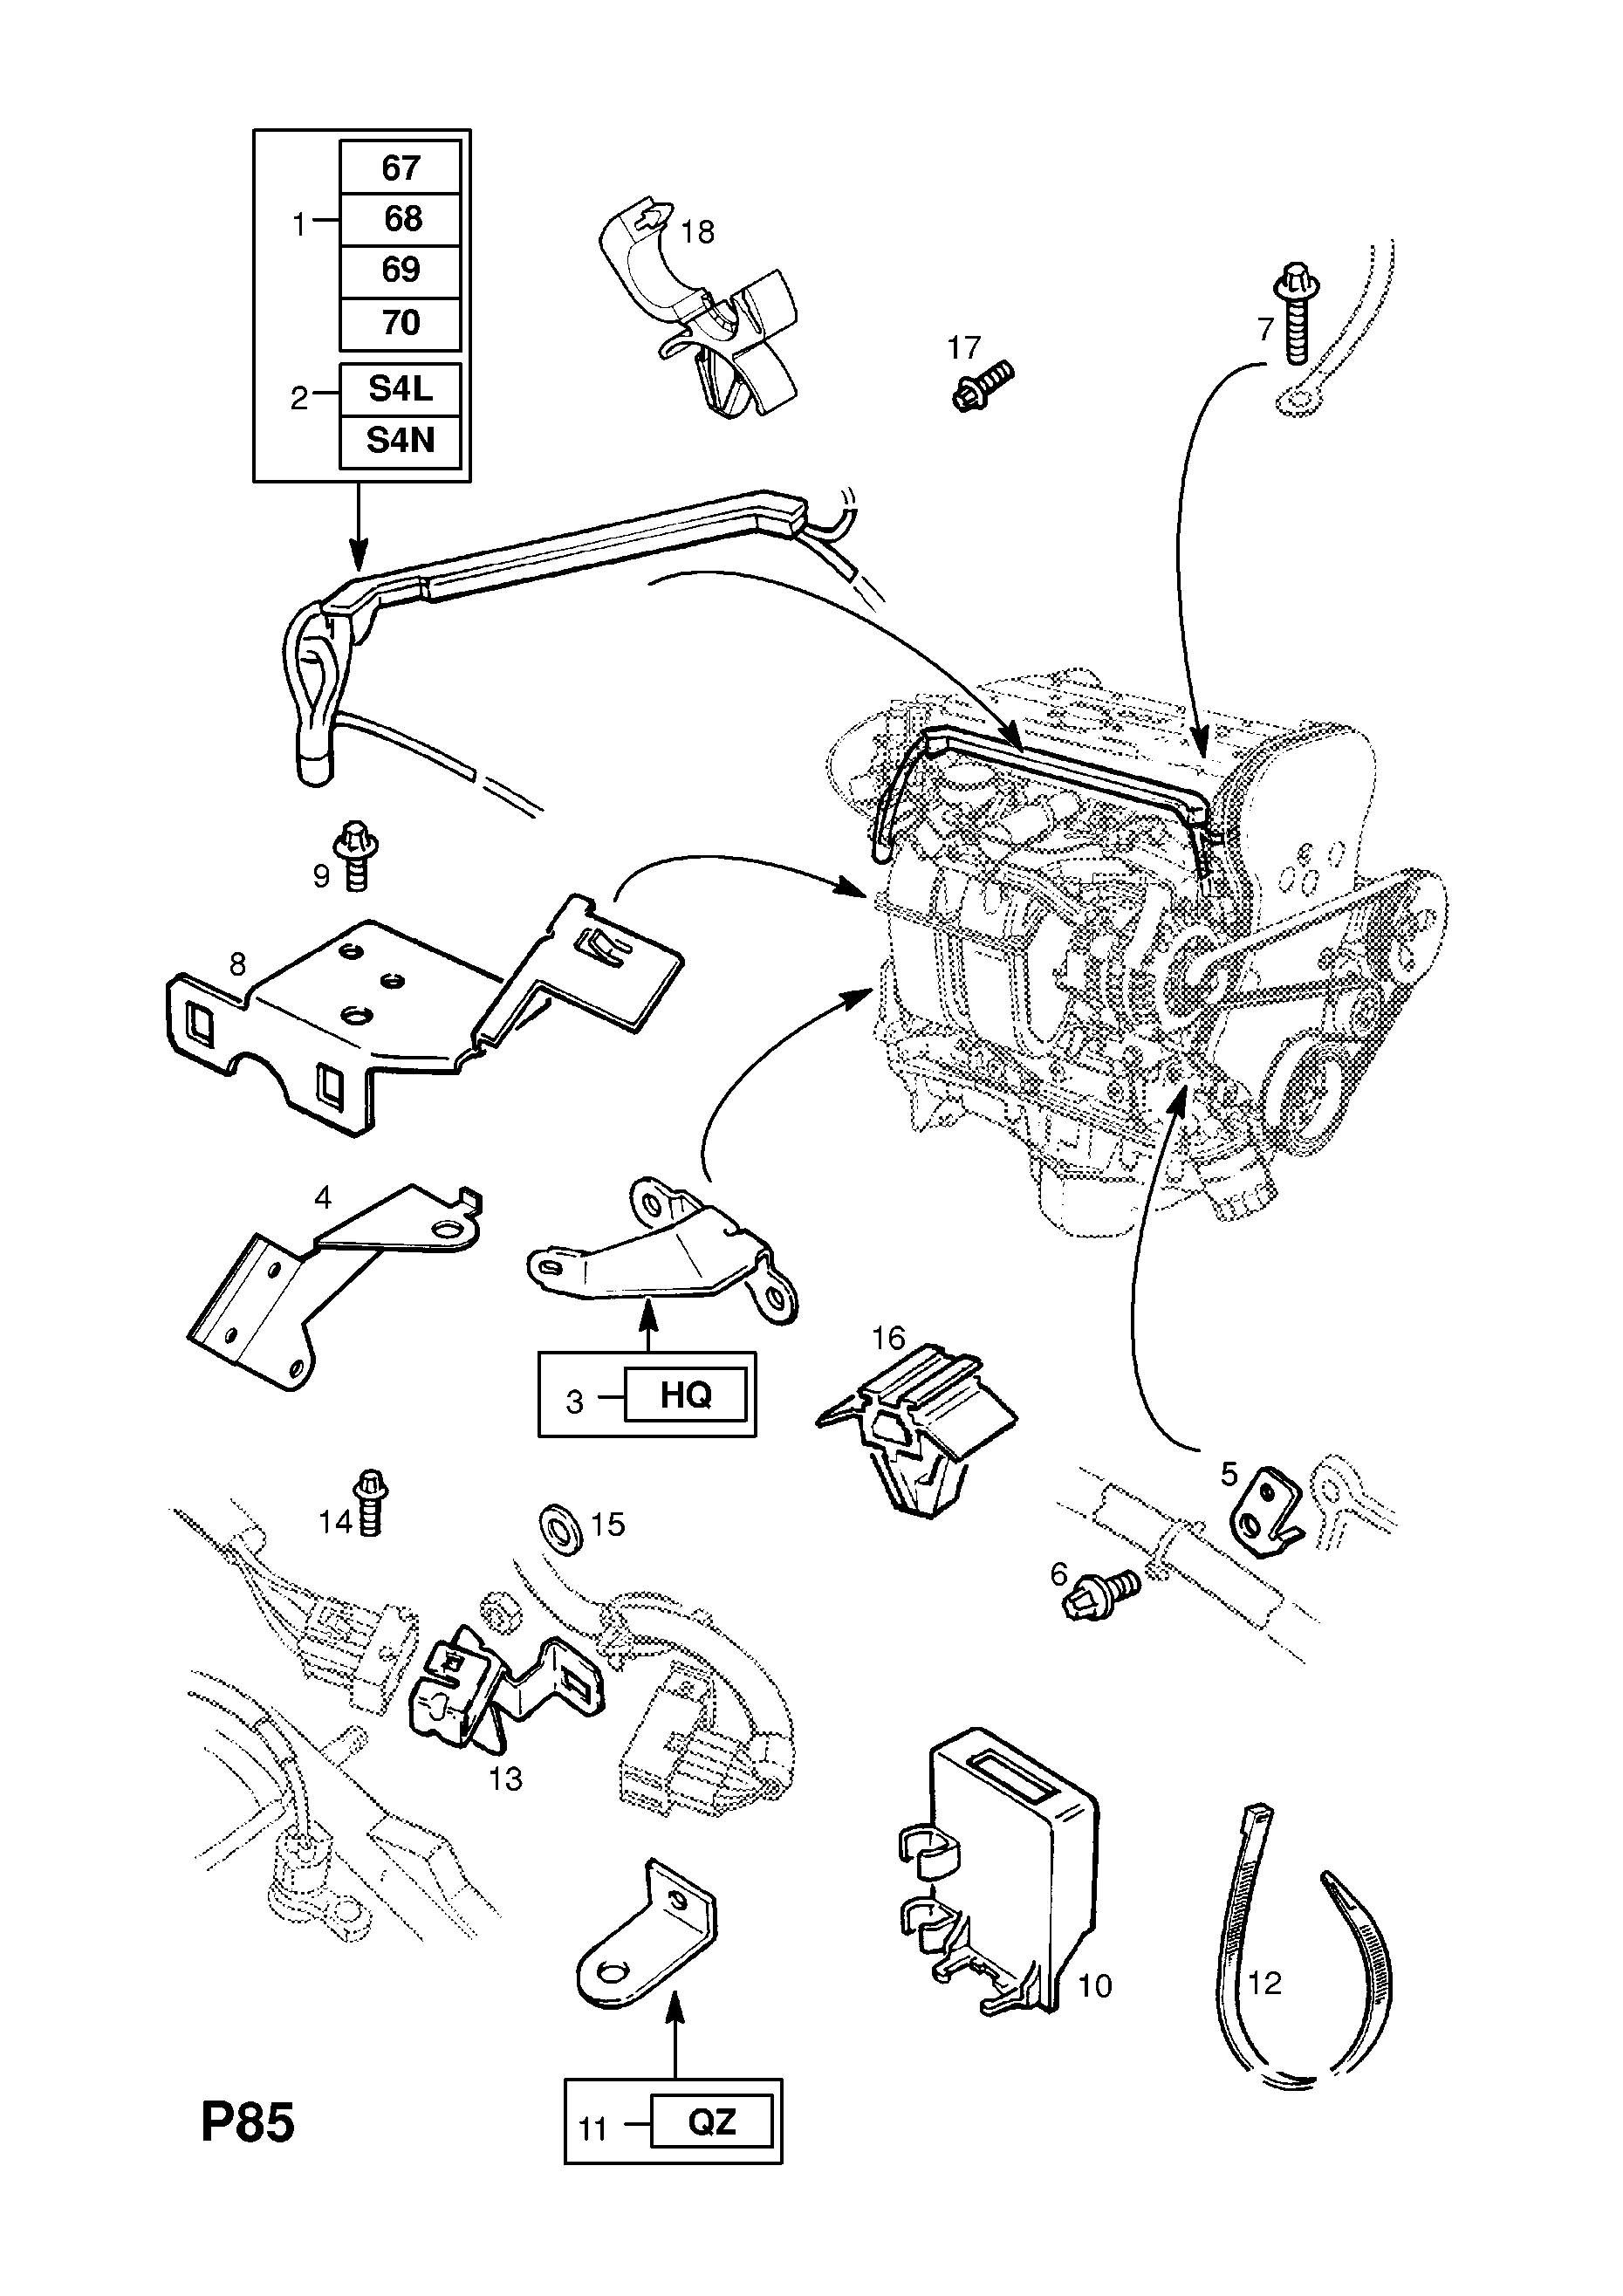 Vauxhall Astra G 1998 2010 P Electrical 9 Wiring Harness 176 68 Gmc Diagram Gm Part Number Genuine Description Range